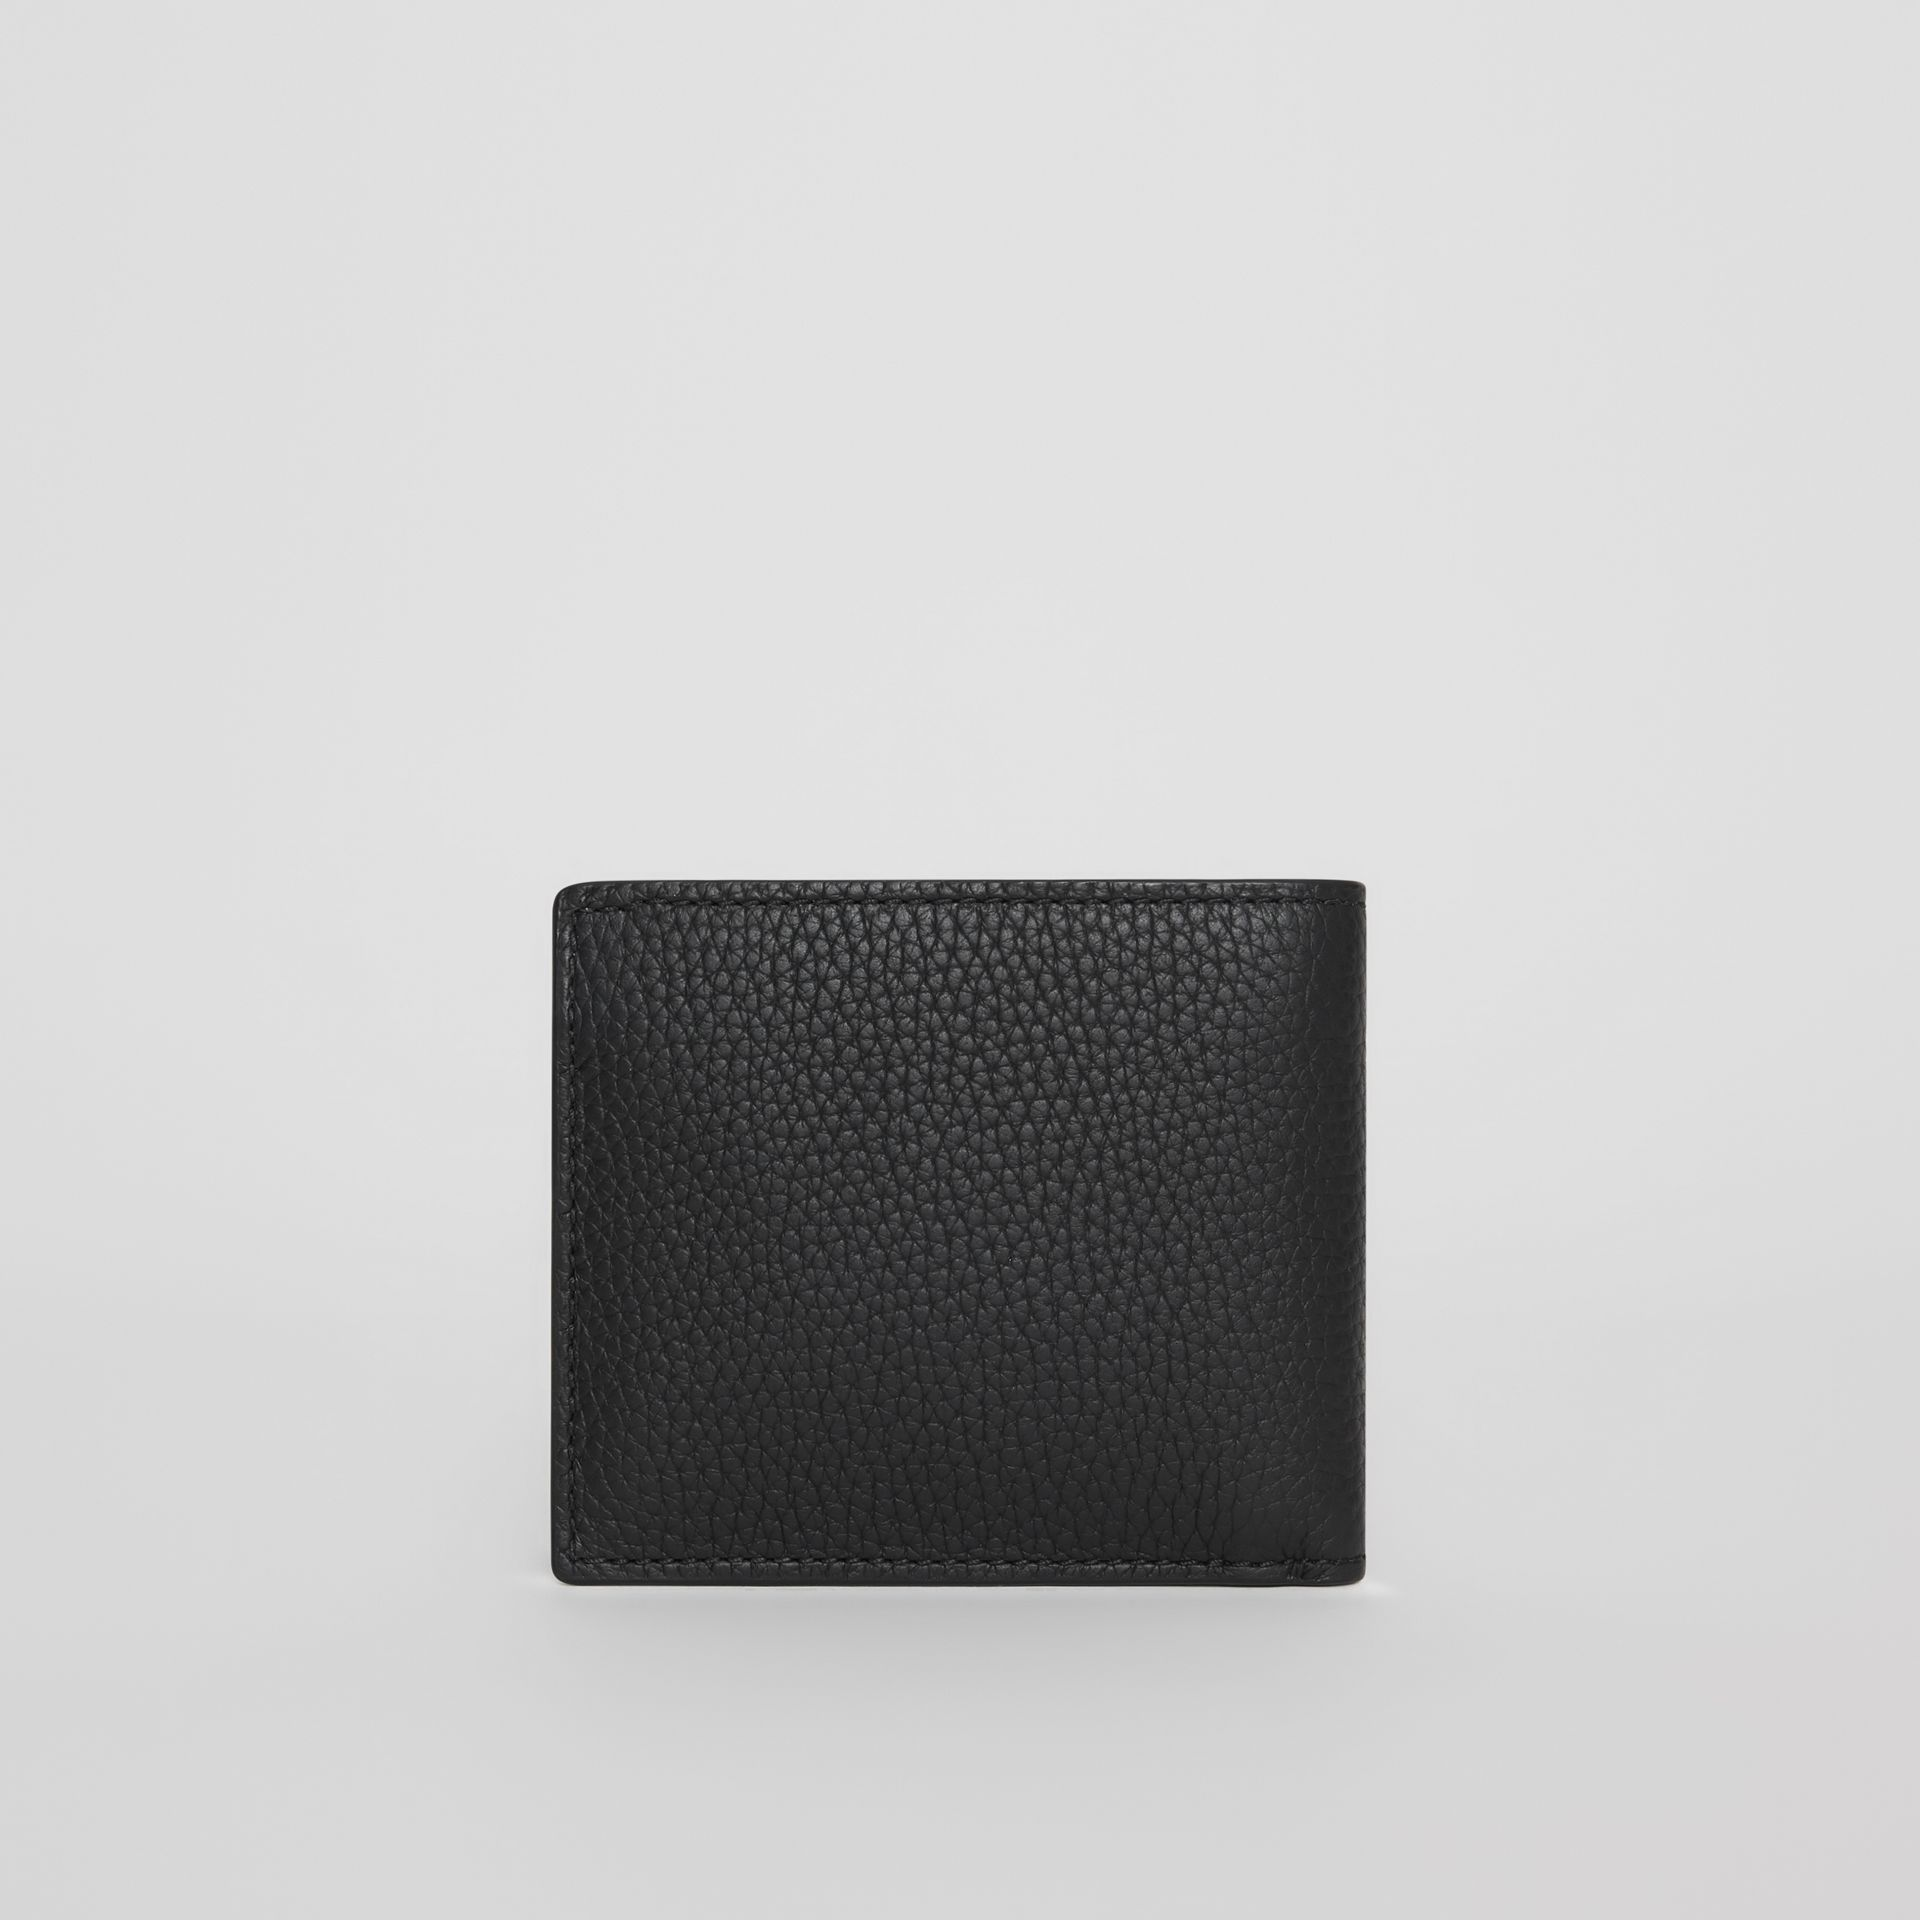 Embossed Leather Bifold Wallet in Black - Men | Burberry Australia - gallery image 5